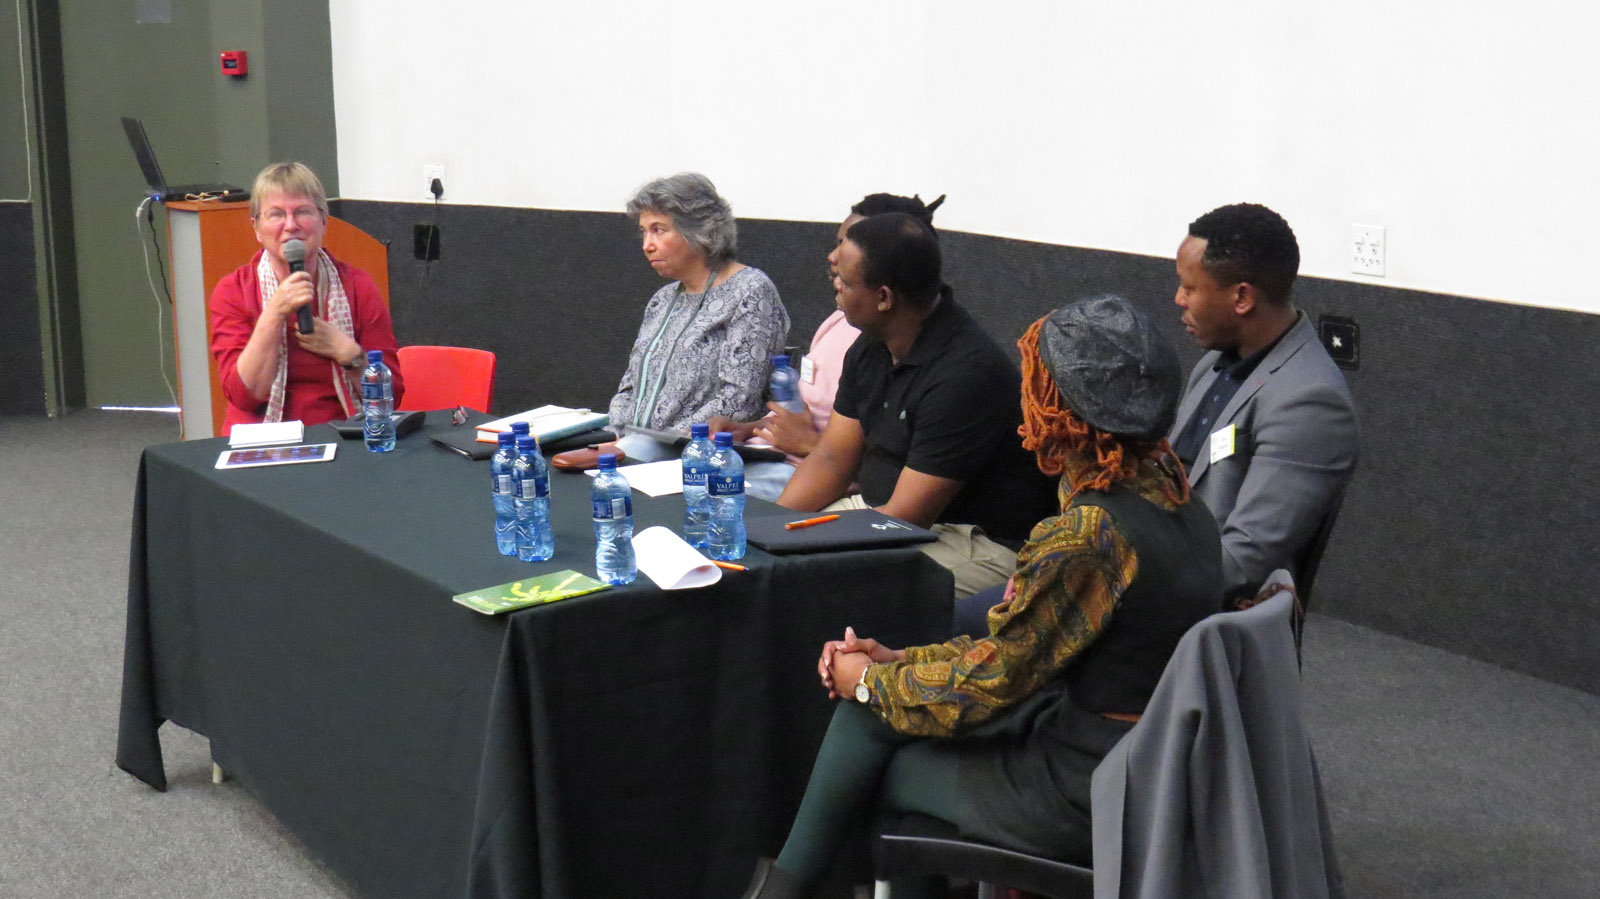 Click the image for a view of: Isabel Hofmeyr chairing the roundtable: South African book arts as a democratic force. Sunday 26 March